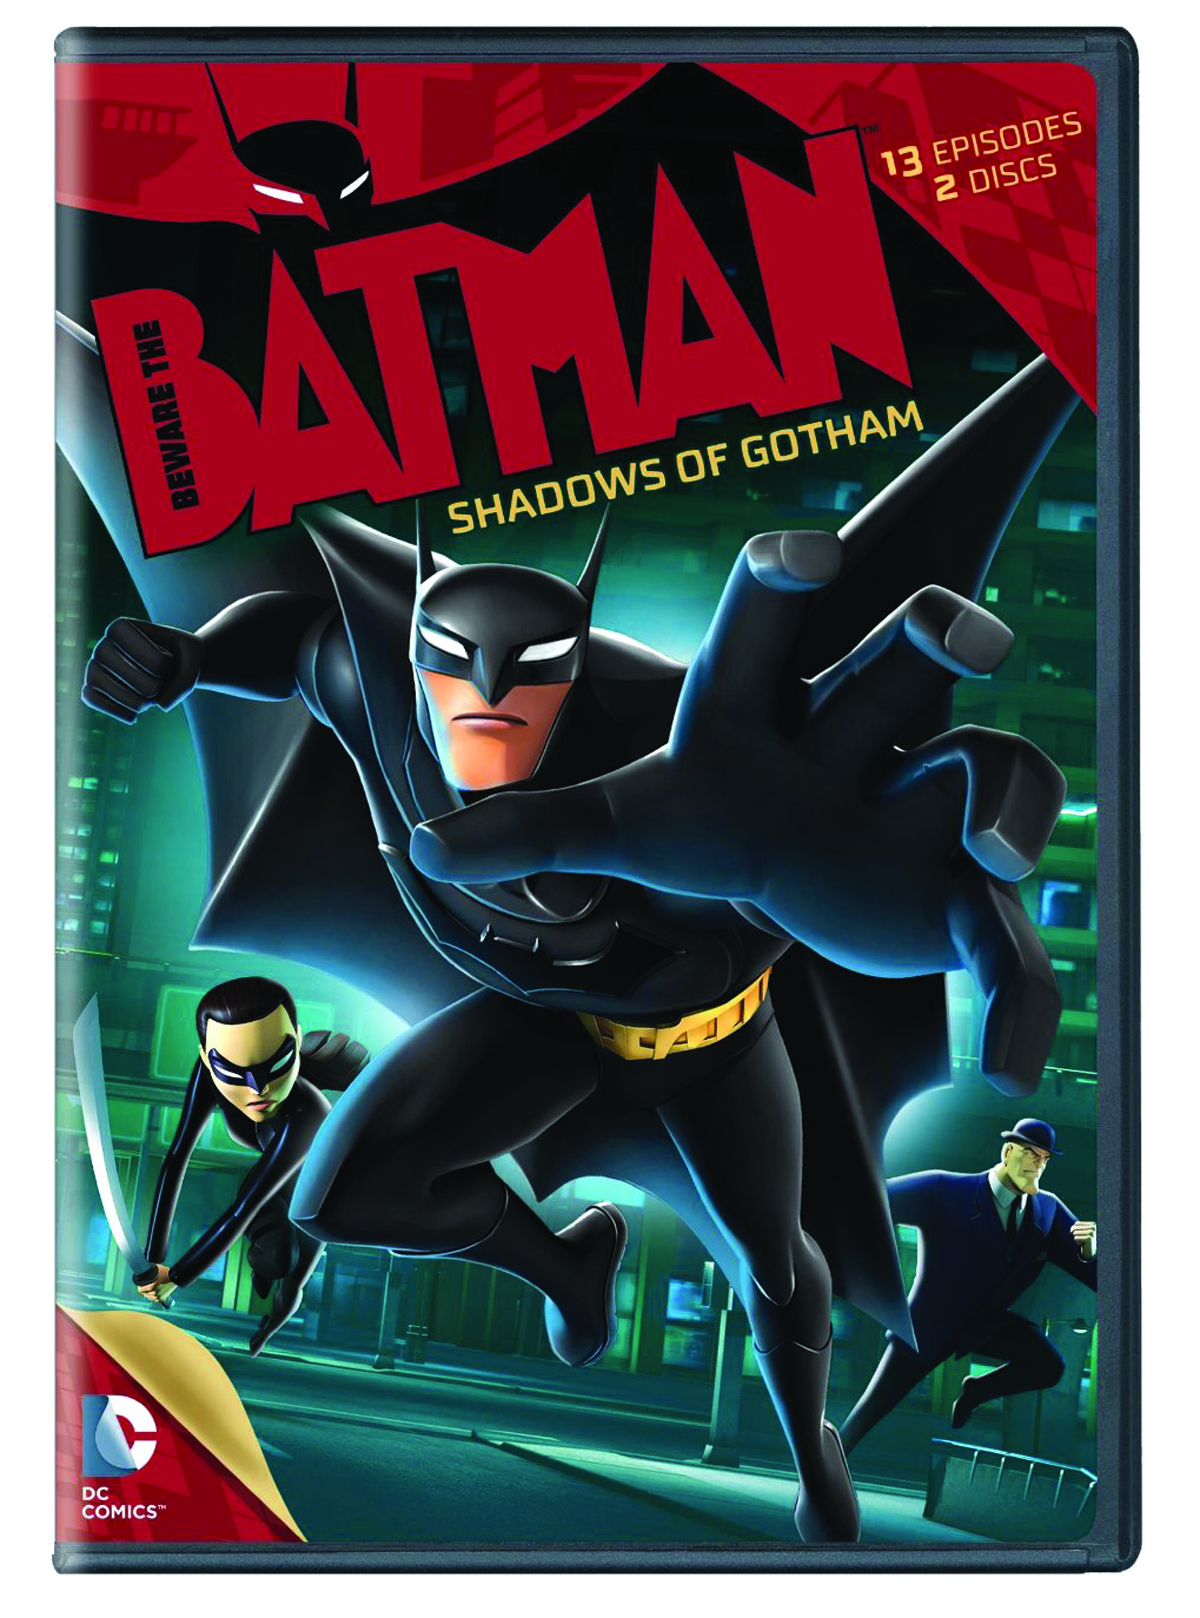 BEWARE THE BATMAN DVD SEA 01 PT 01